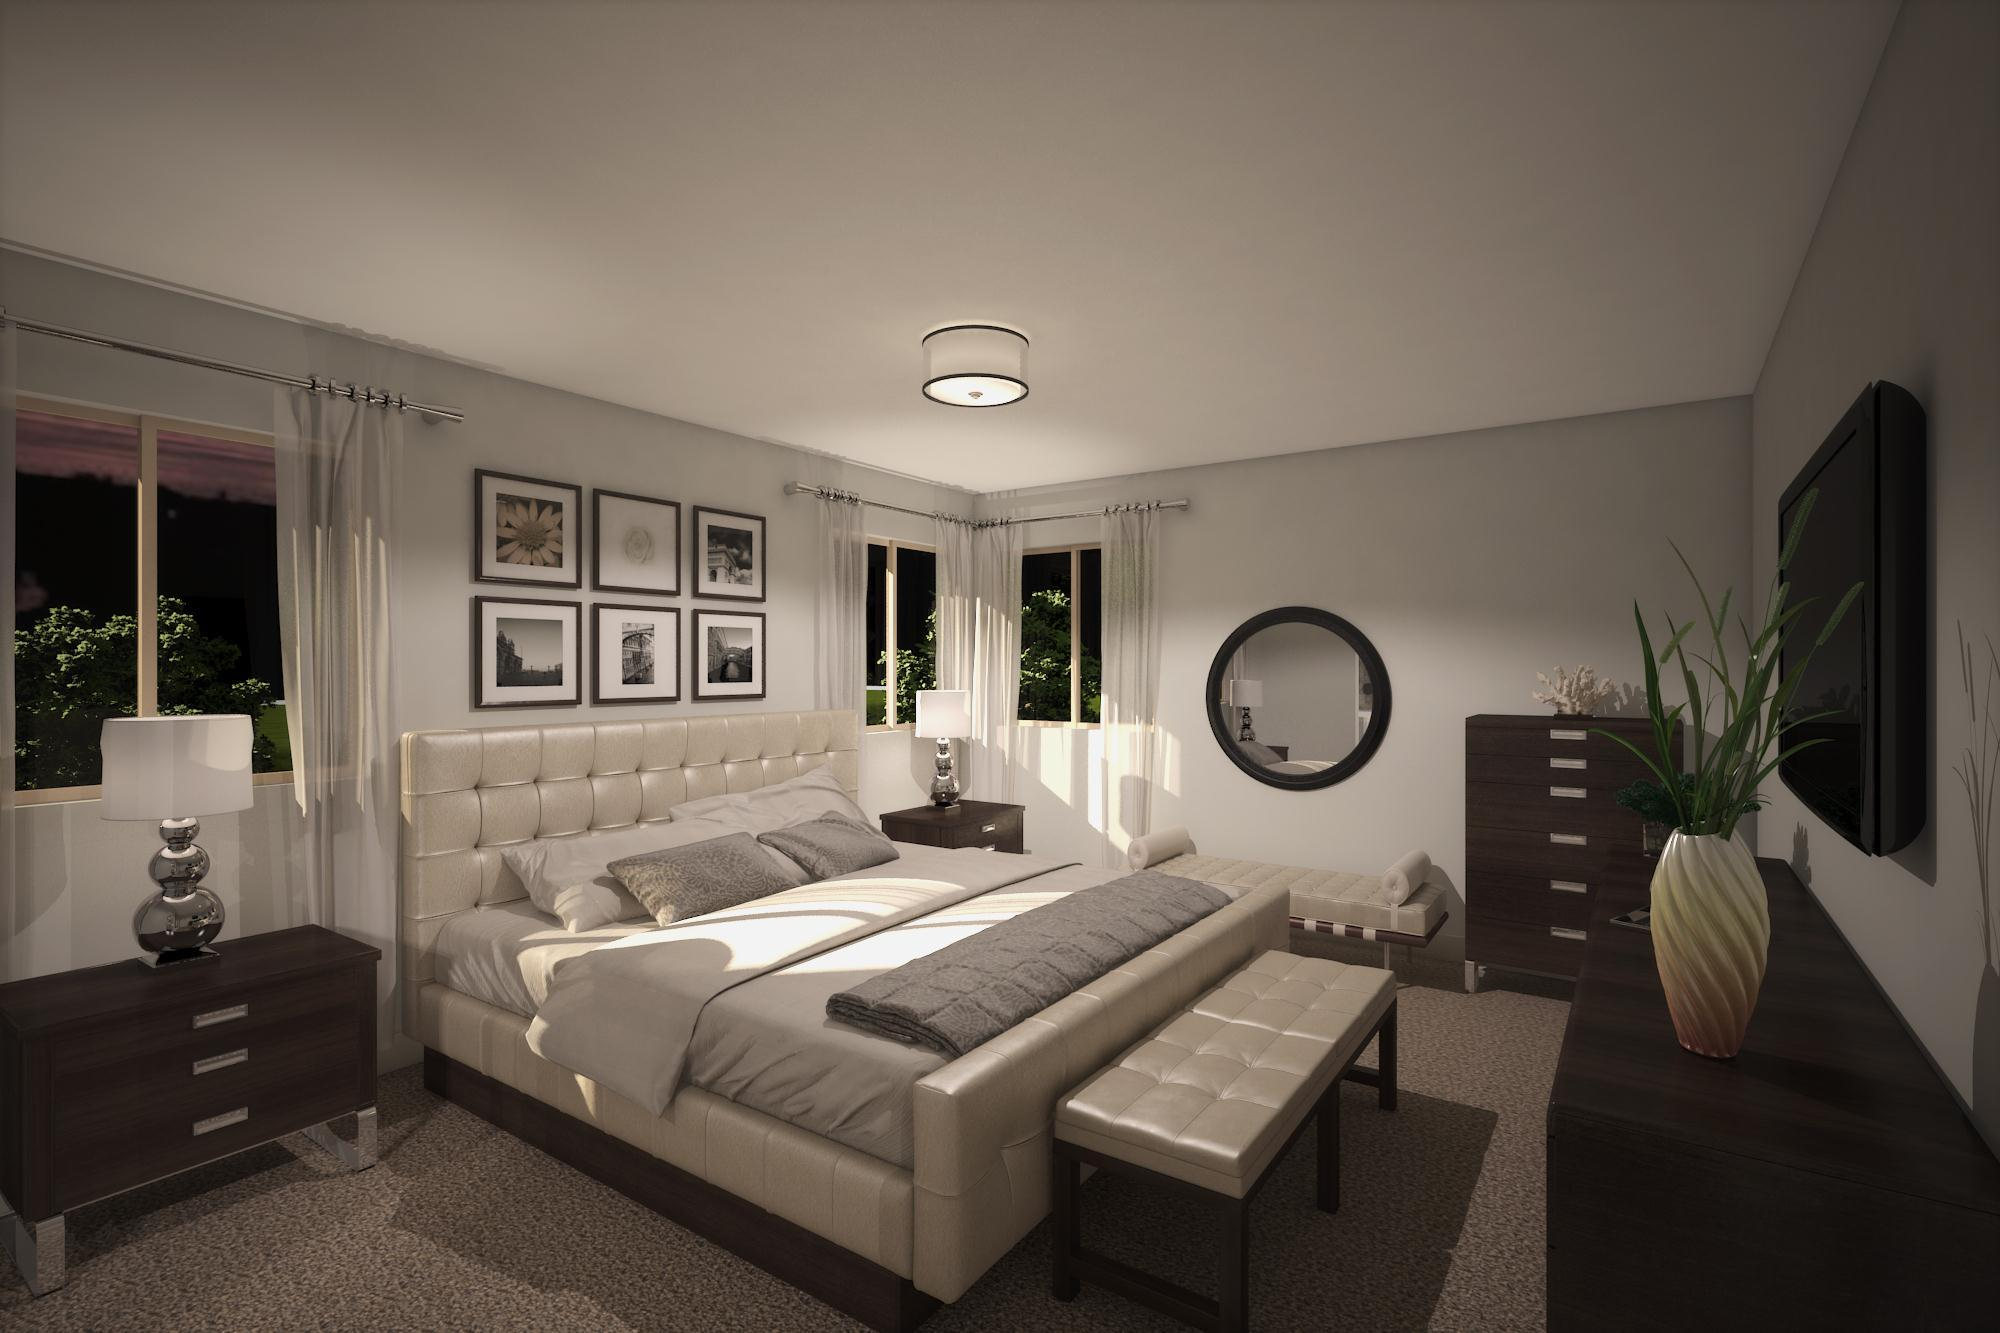 Bedroom featured in the Plan 5- 2377 By Jenuane Communities in Reno, NV